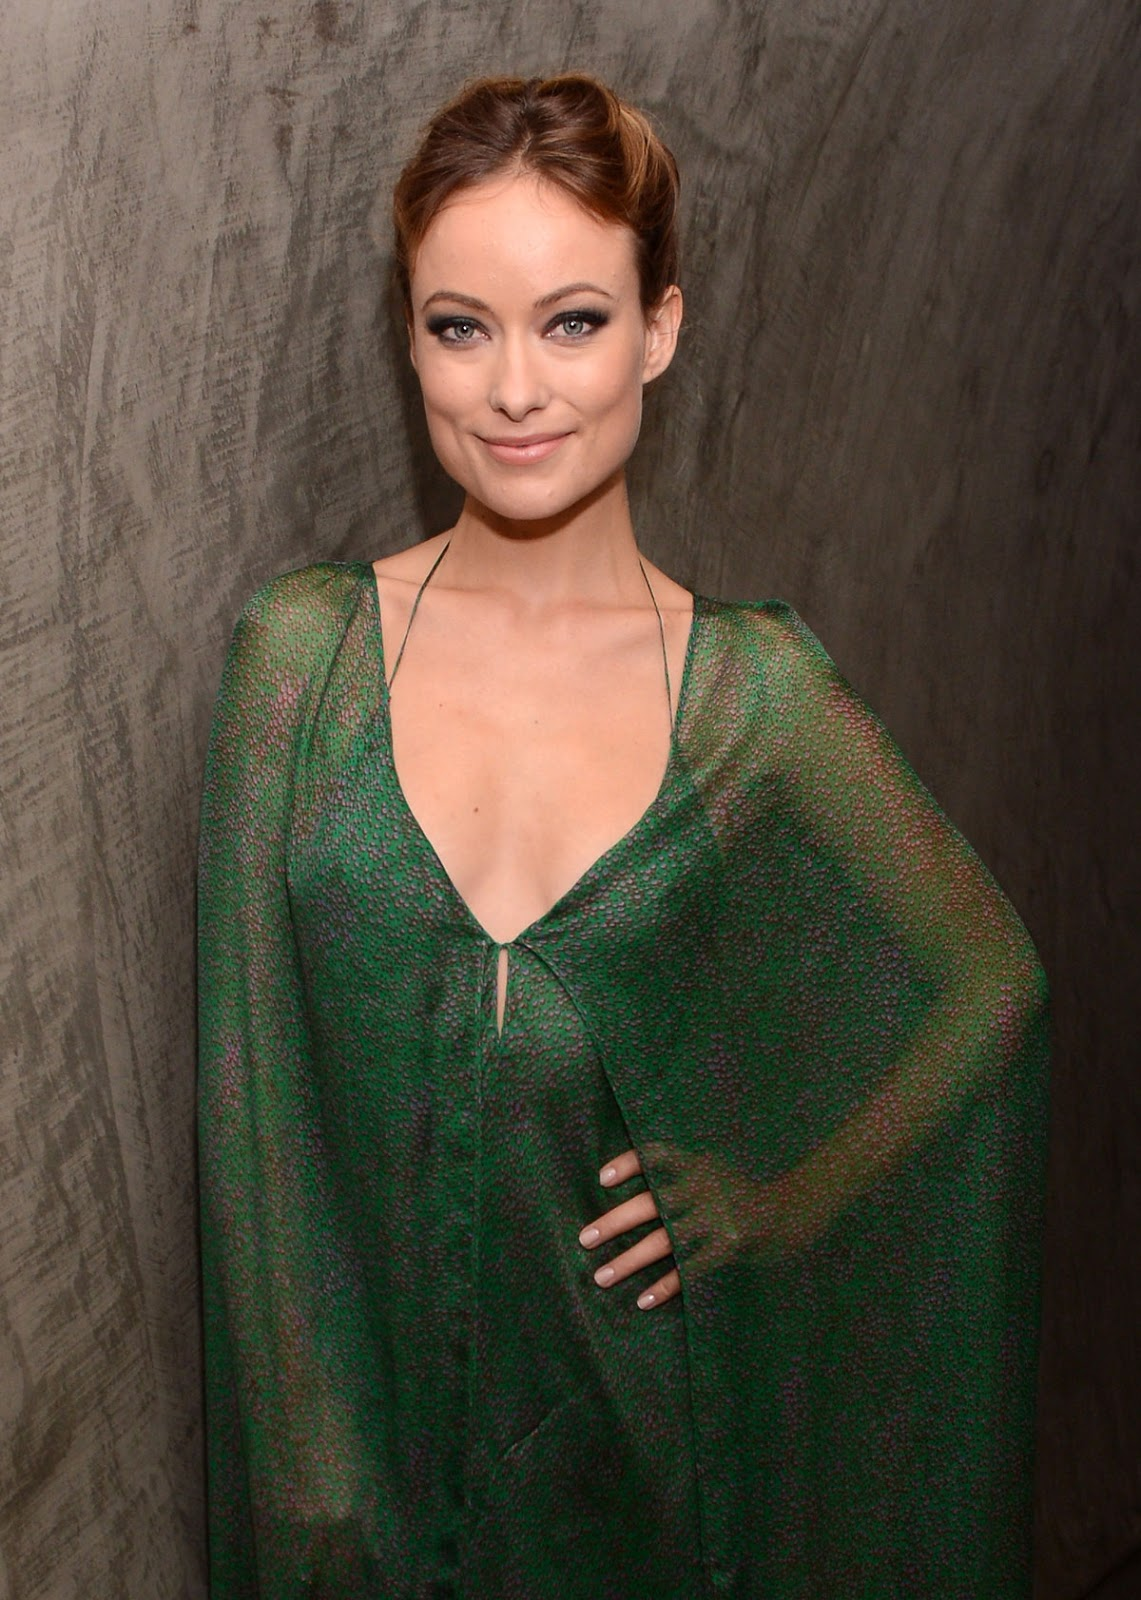 Olivia Wilde Pictures Gallery 3: Olivia Wilde Profile And Latest Pictures 2013